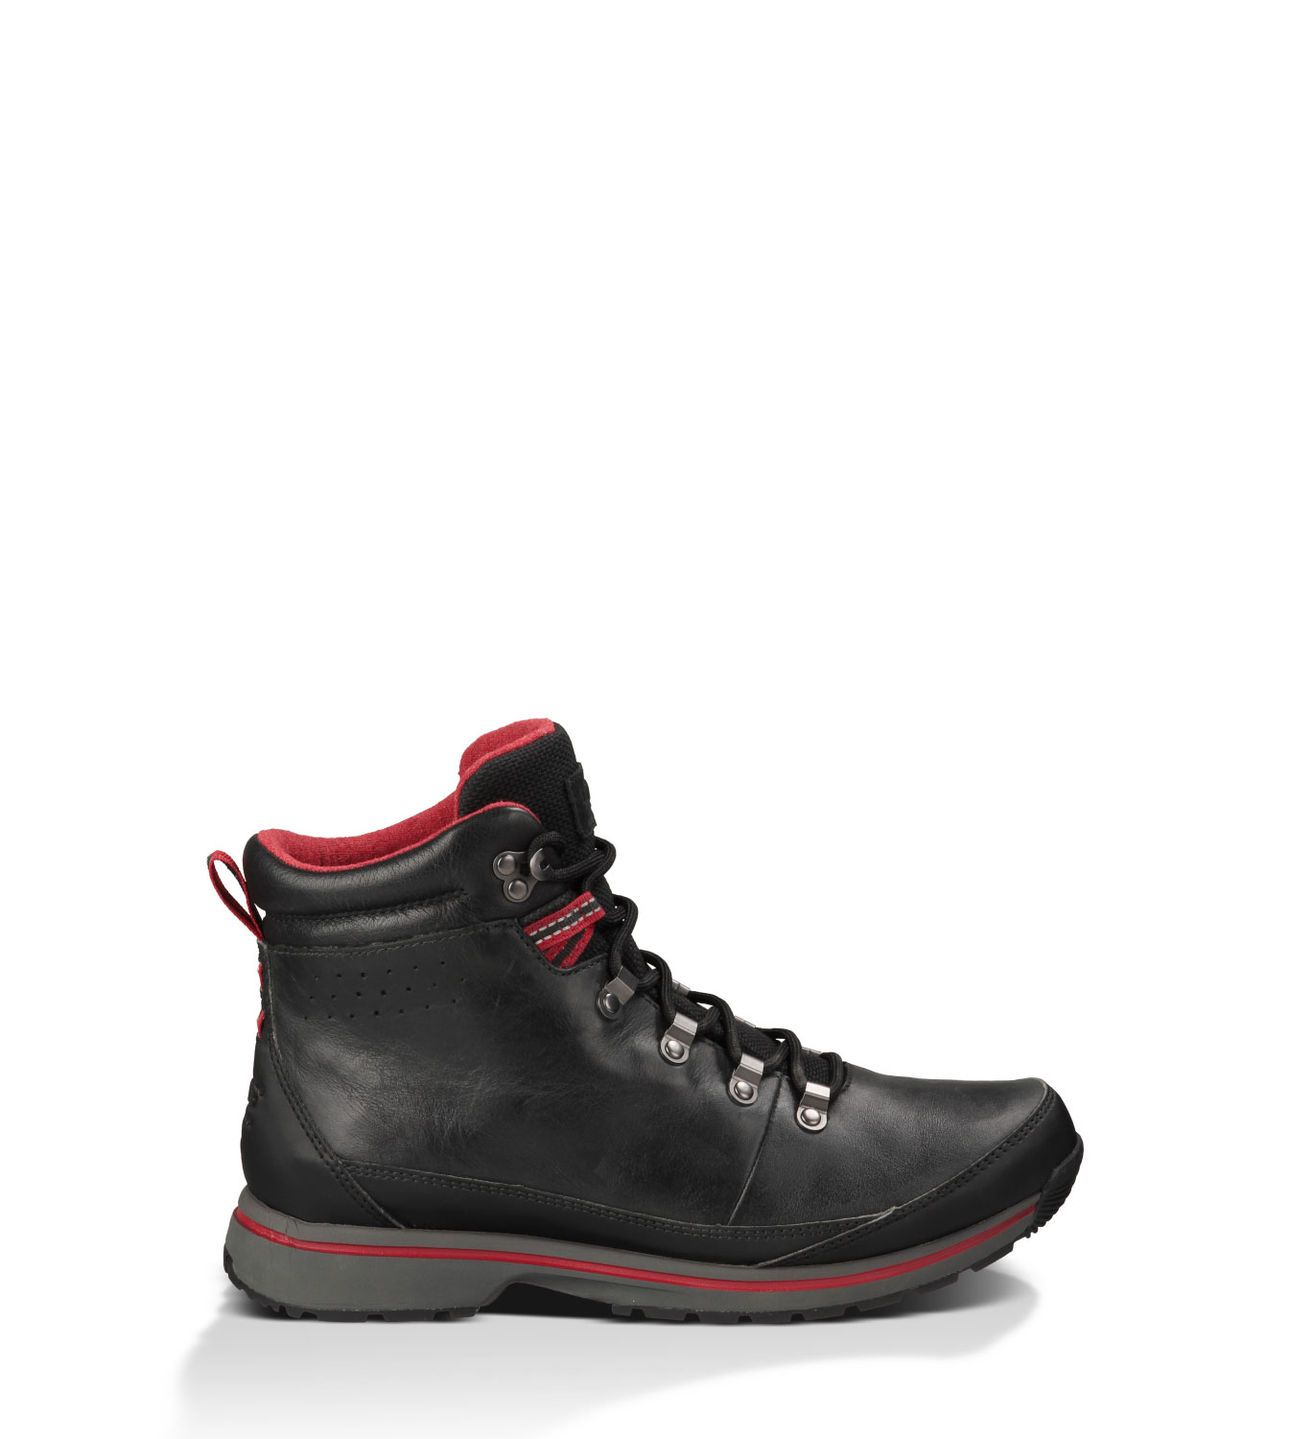 aebca748b Free Shipping & Free Returns for the Authentic UGG® Men's Ellison Boot.  Check out all of our waterproof boots for men at UGGAustralia.com